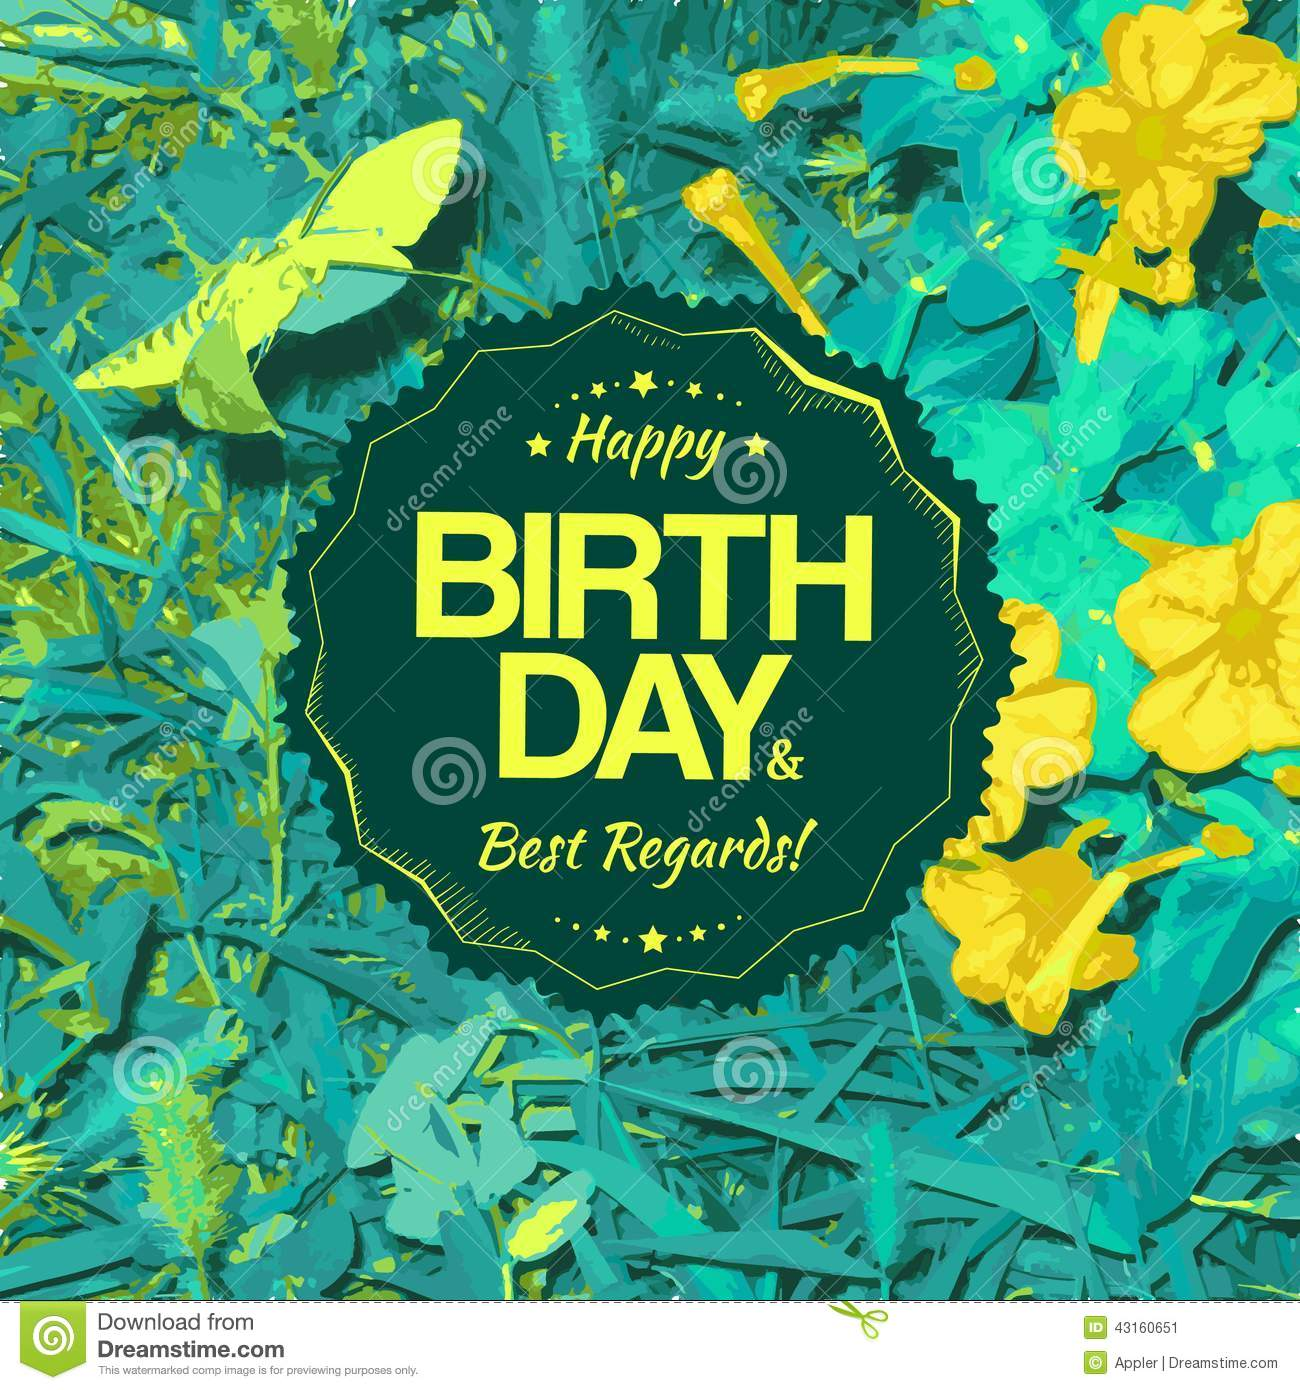 Best Regards Label For Birthday Card Vector Image 43160651 – Best Birthday Card Design